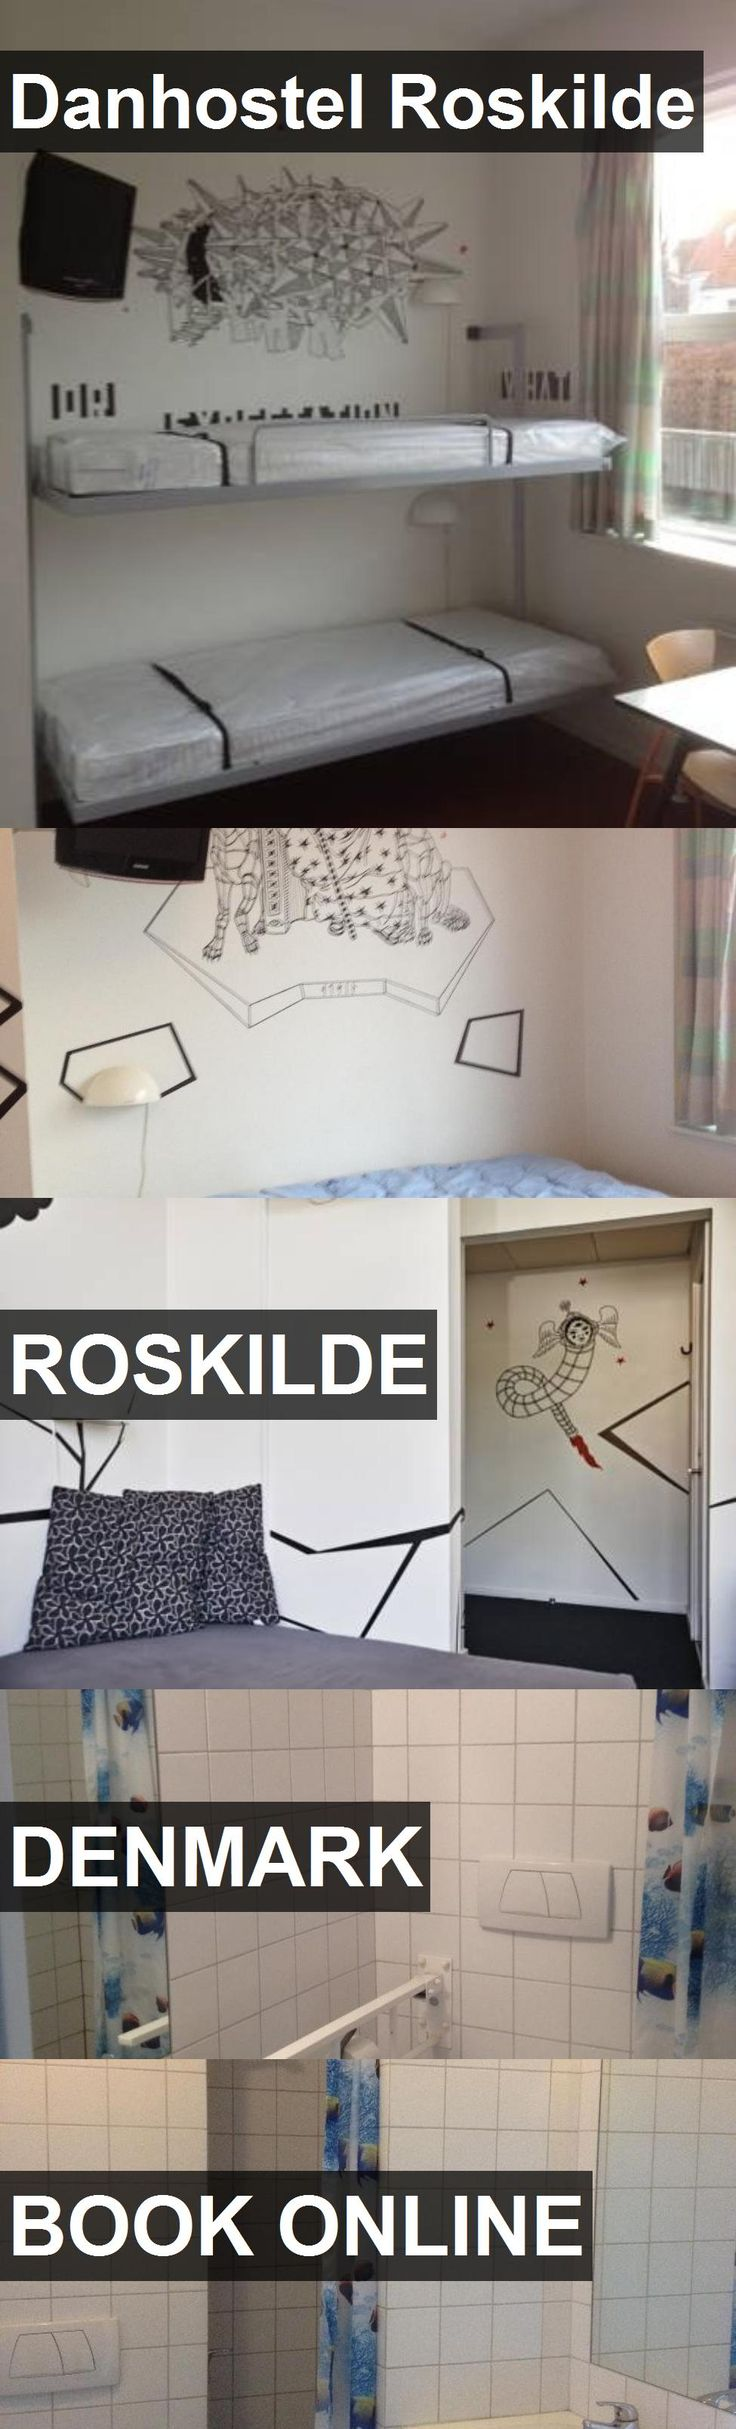 Danhostel Roskilde in Roskilde, Denmark. For more information, photos, reviews and best prices please follow the link. #Denmark #Roskilde #travel #vacation #hostel